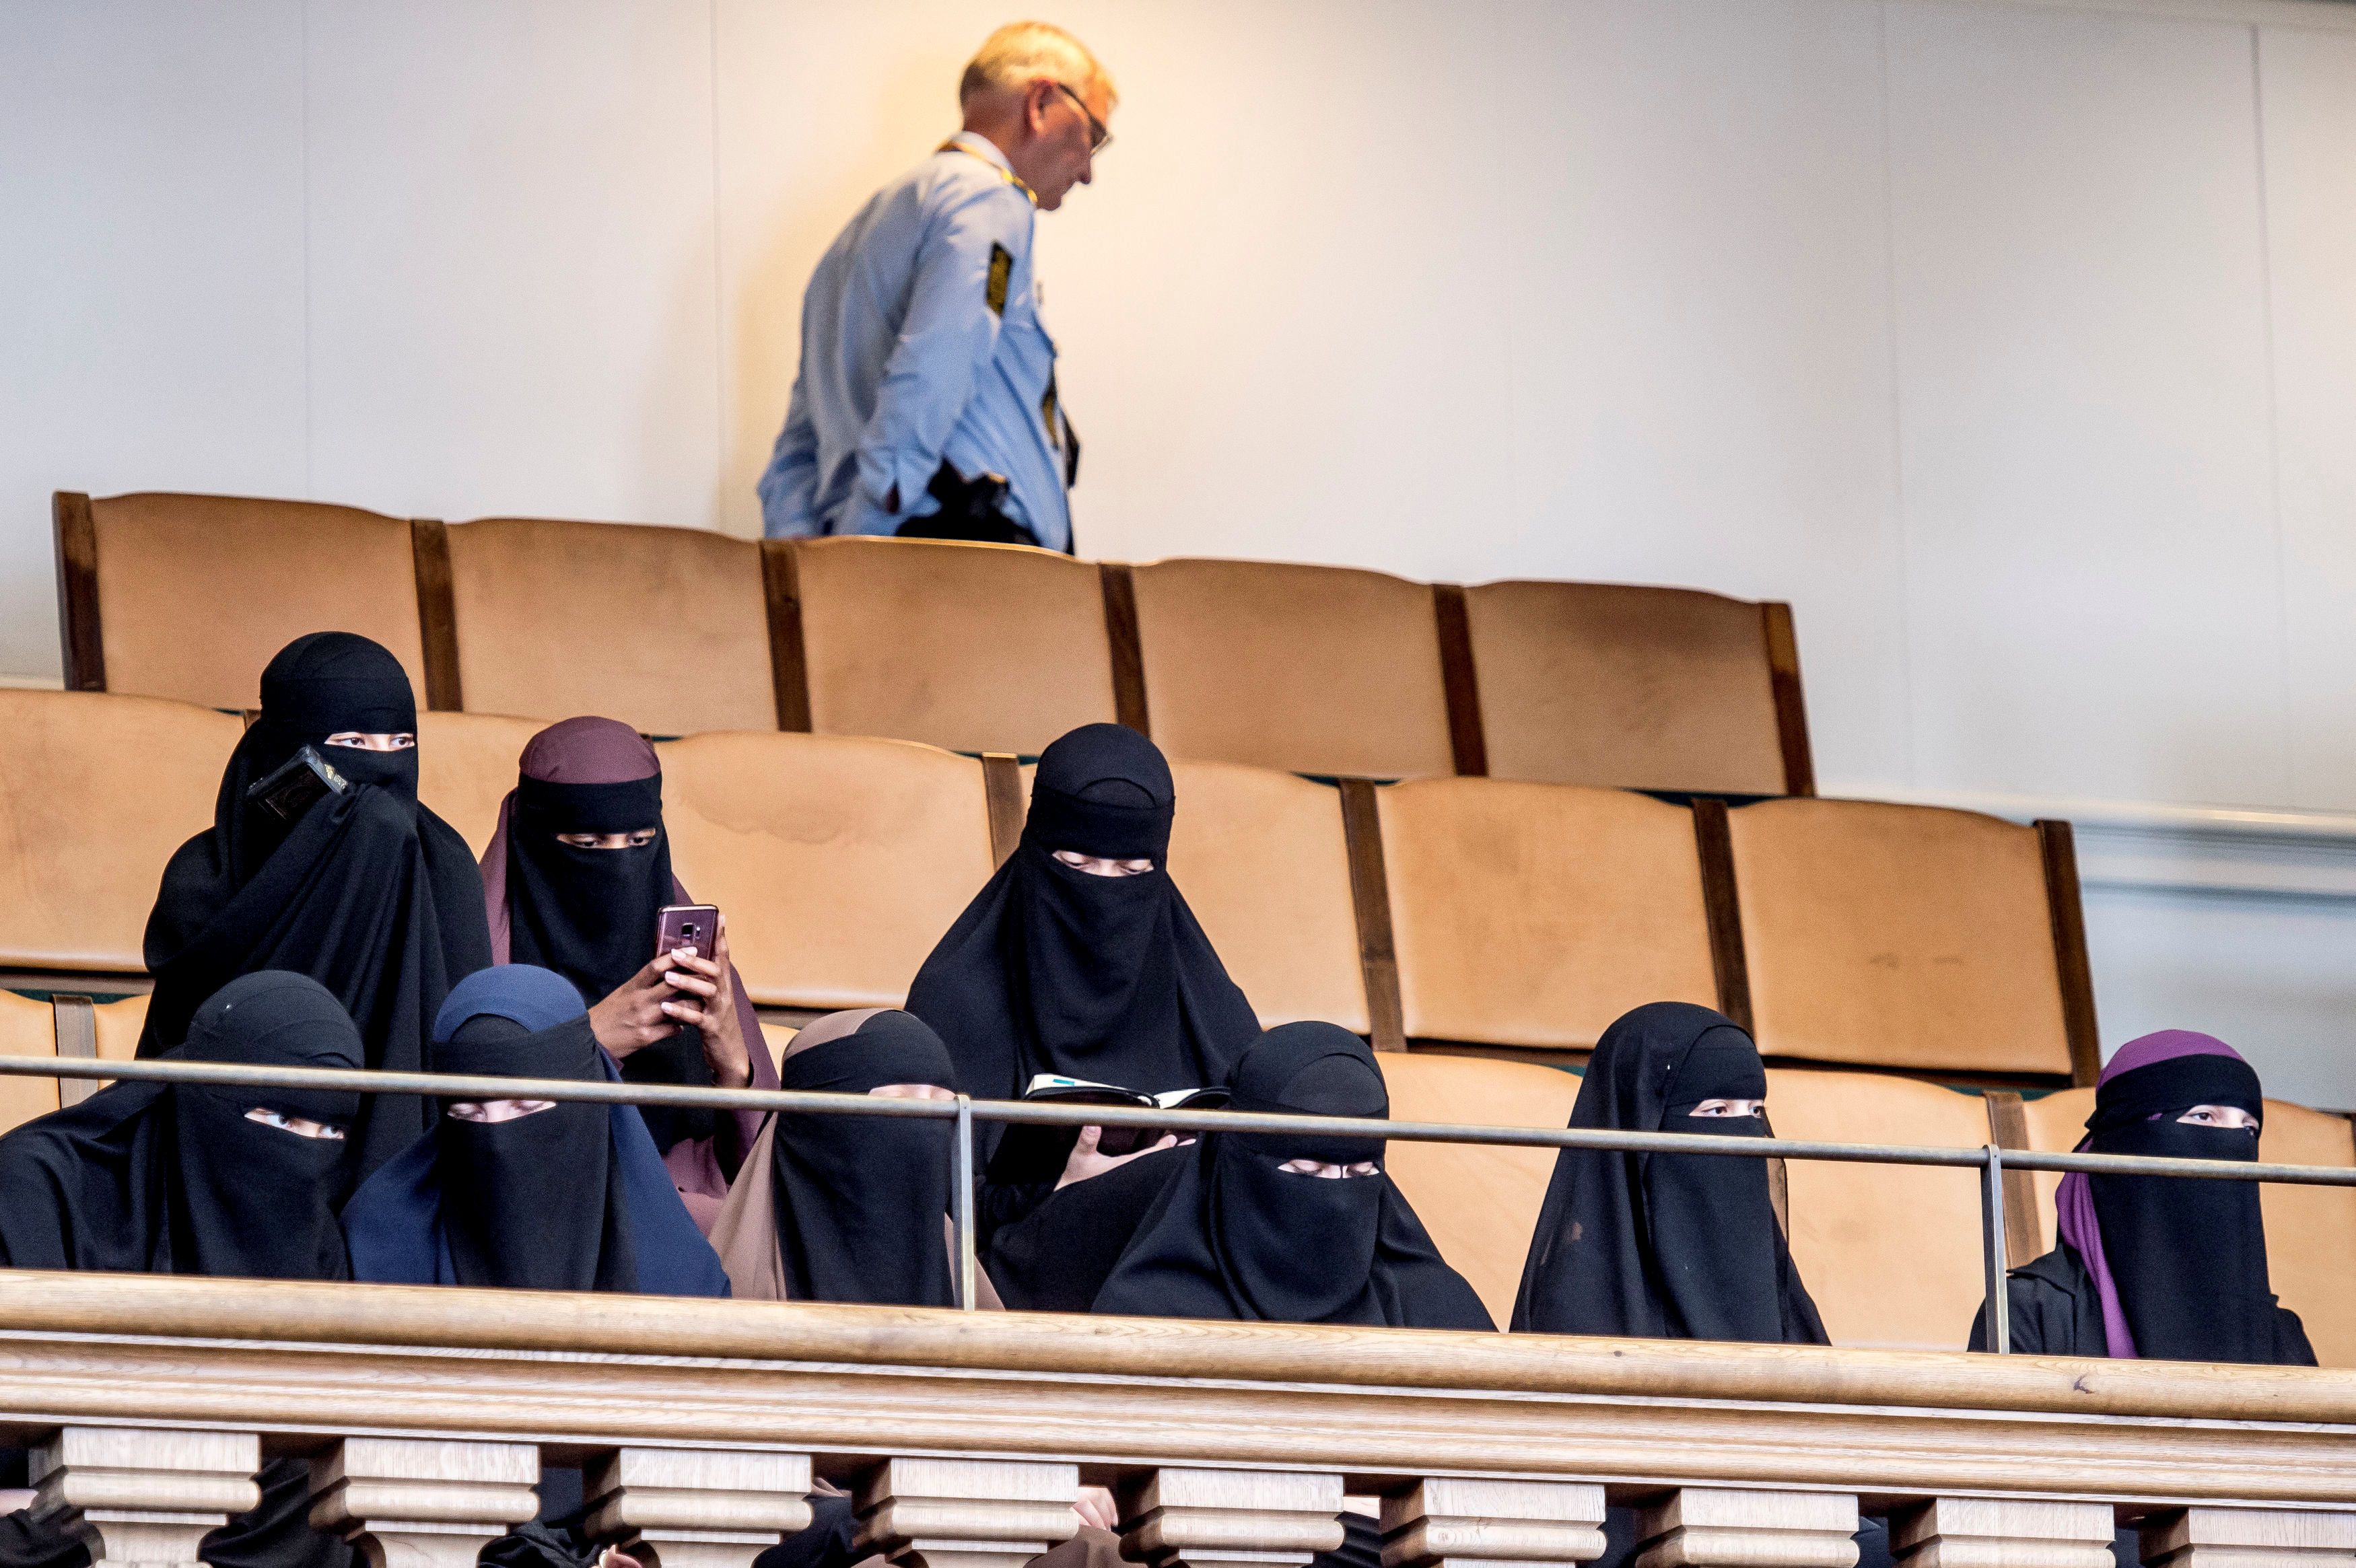 Danish Parliament Bans Wearing Niqabs in Public